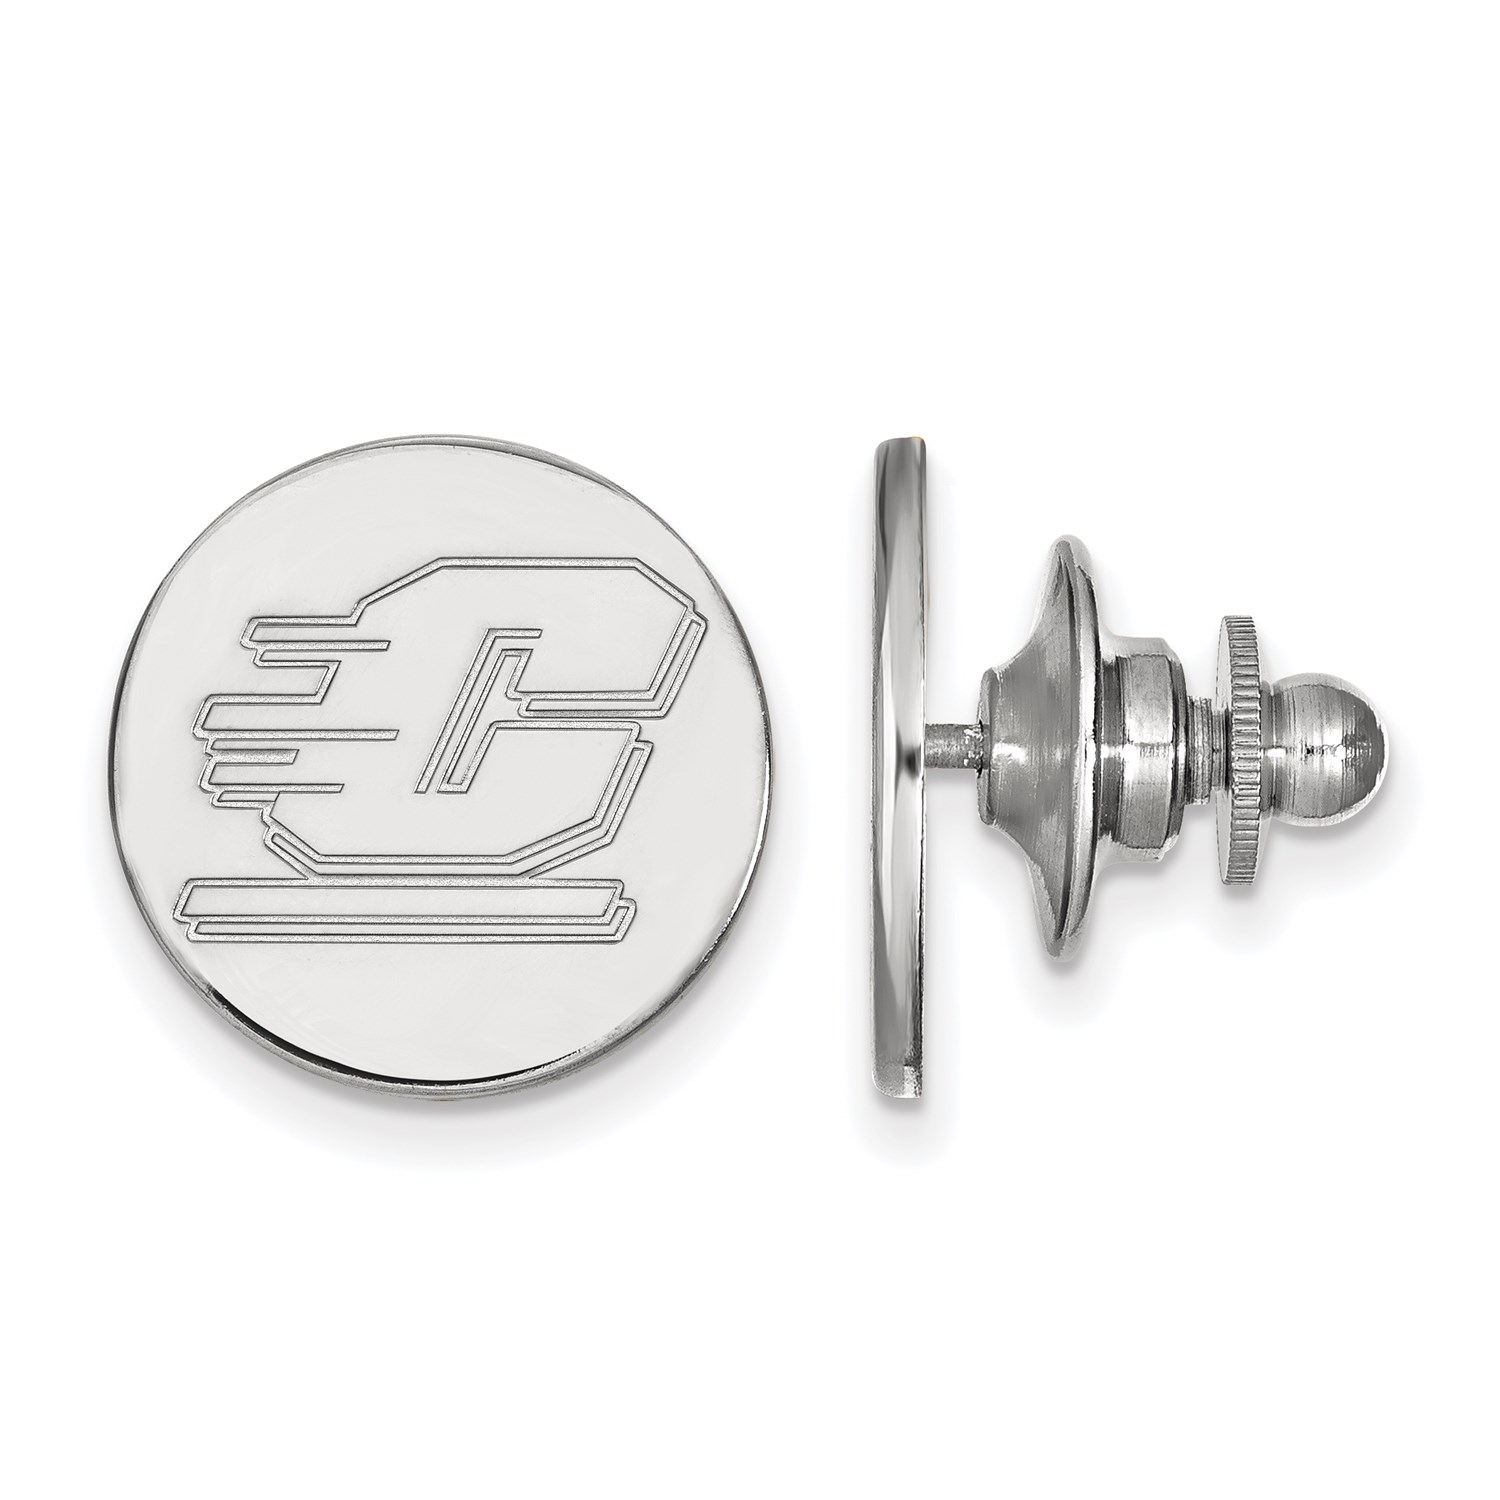 14k White Gold LogoArt Licensed Central Michigan University CMU Lapel Pin